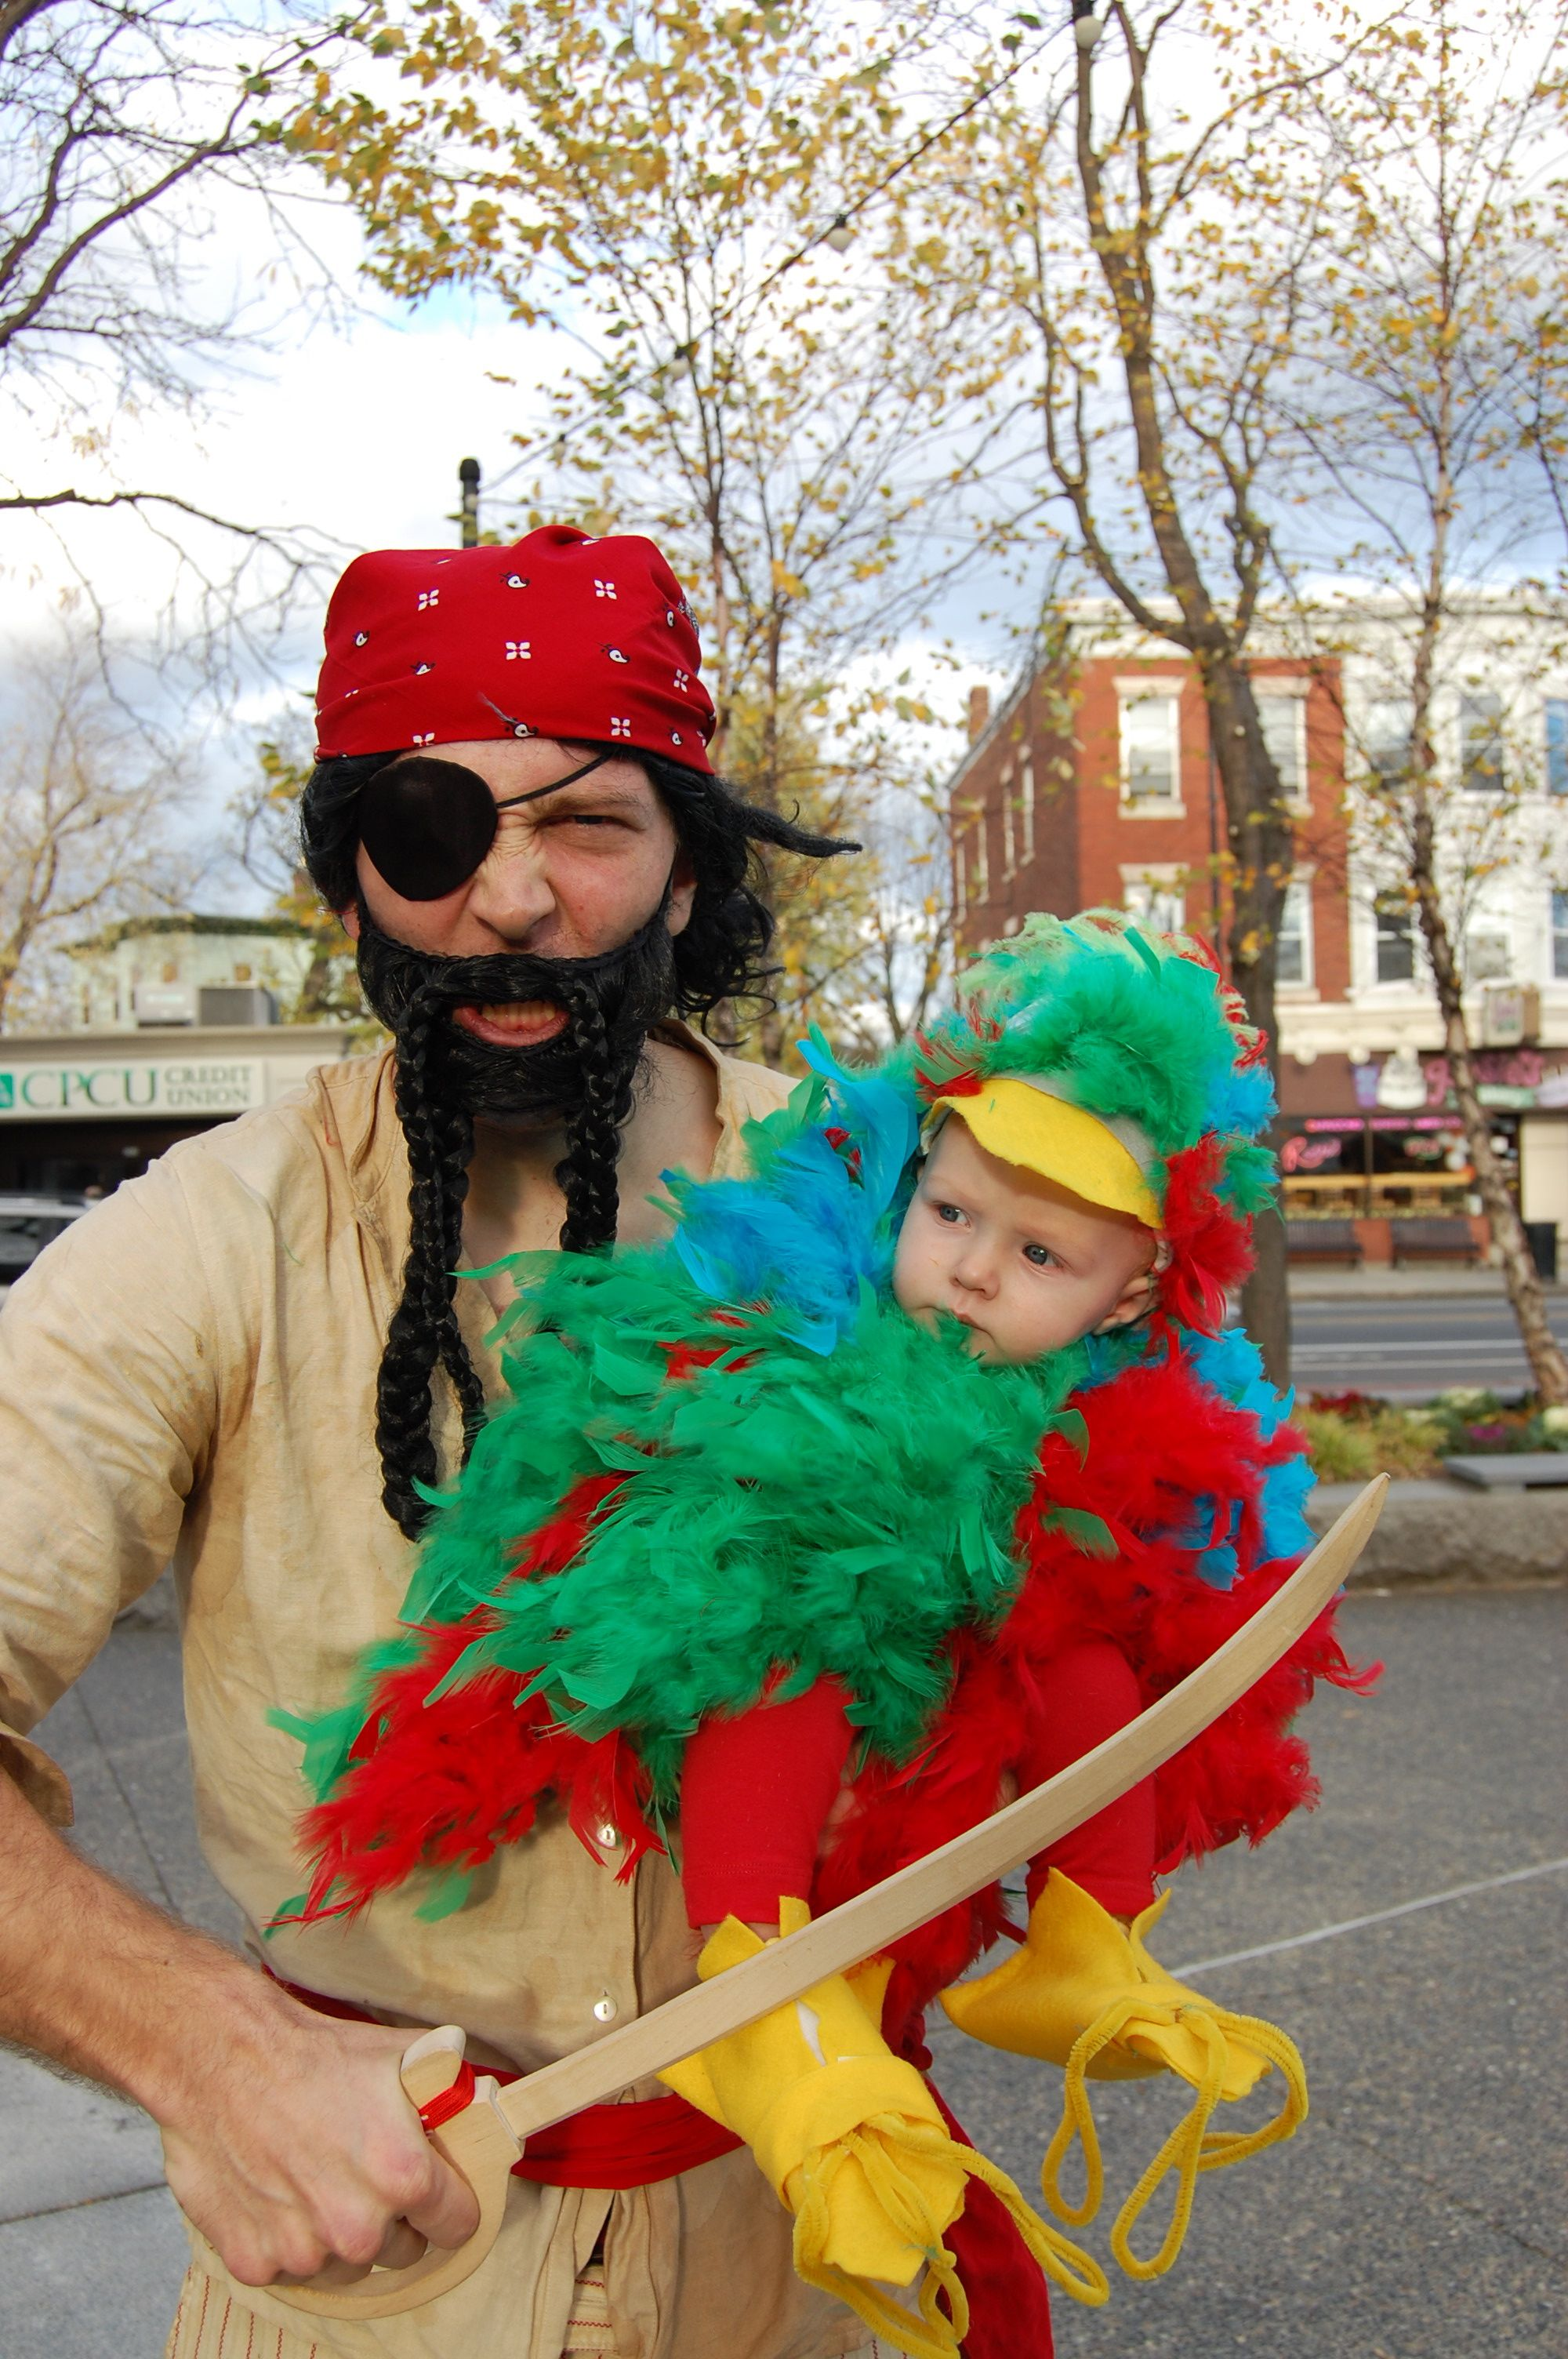 DIY Halloween Costume - Pirate u0026 his parrot  sc 1 st  Pinterest & DIY Halloween Costume - Pirate u0026 his parrot | fall | Pinterest ...